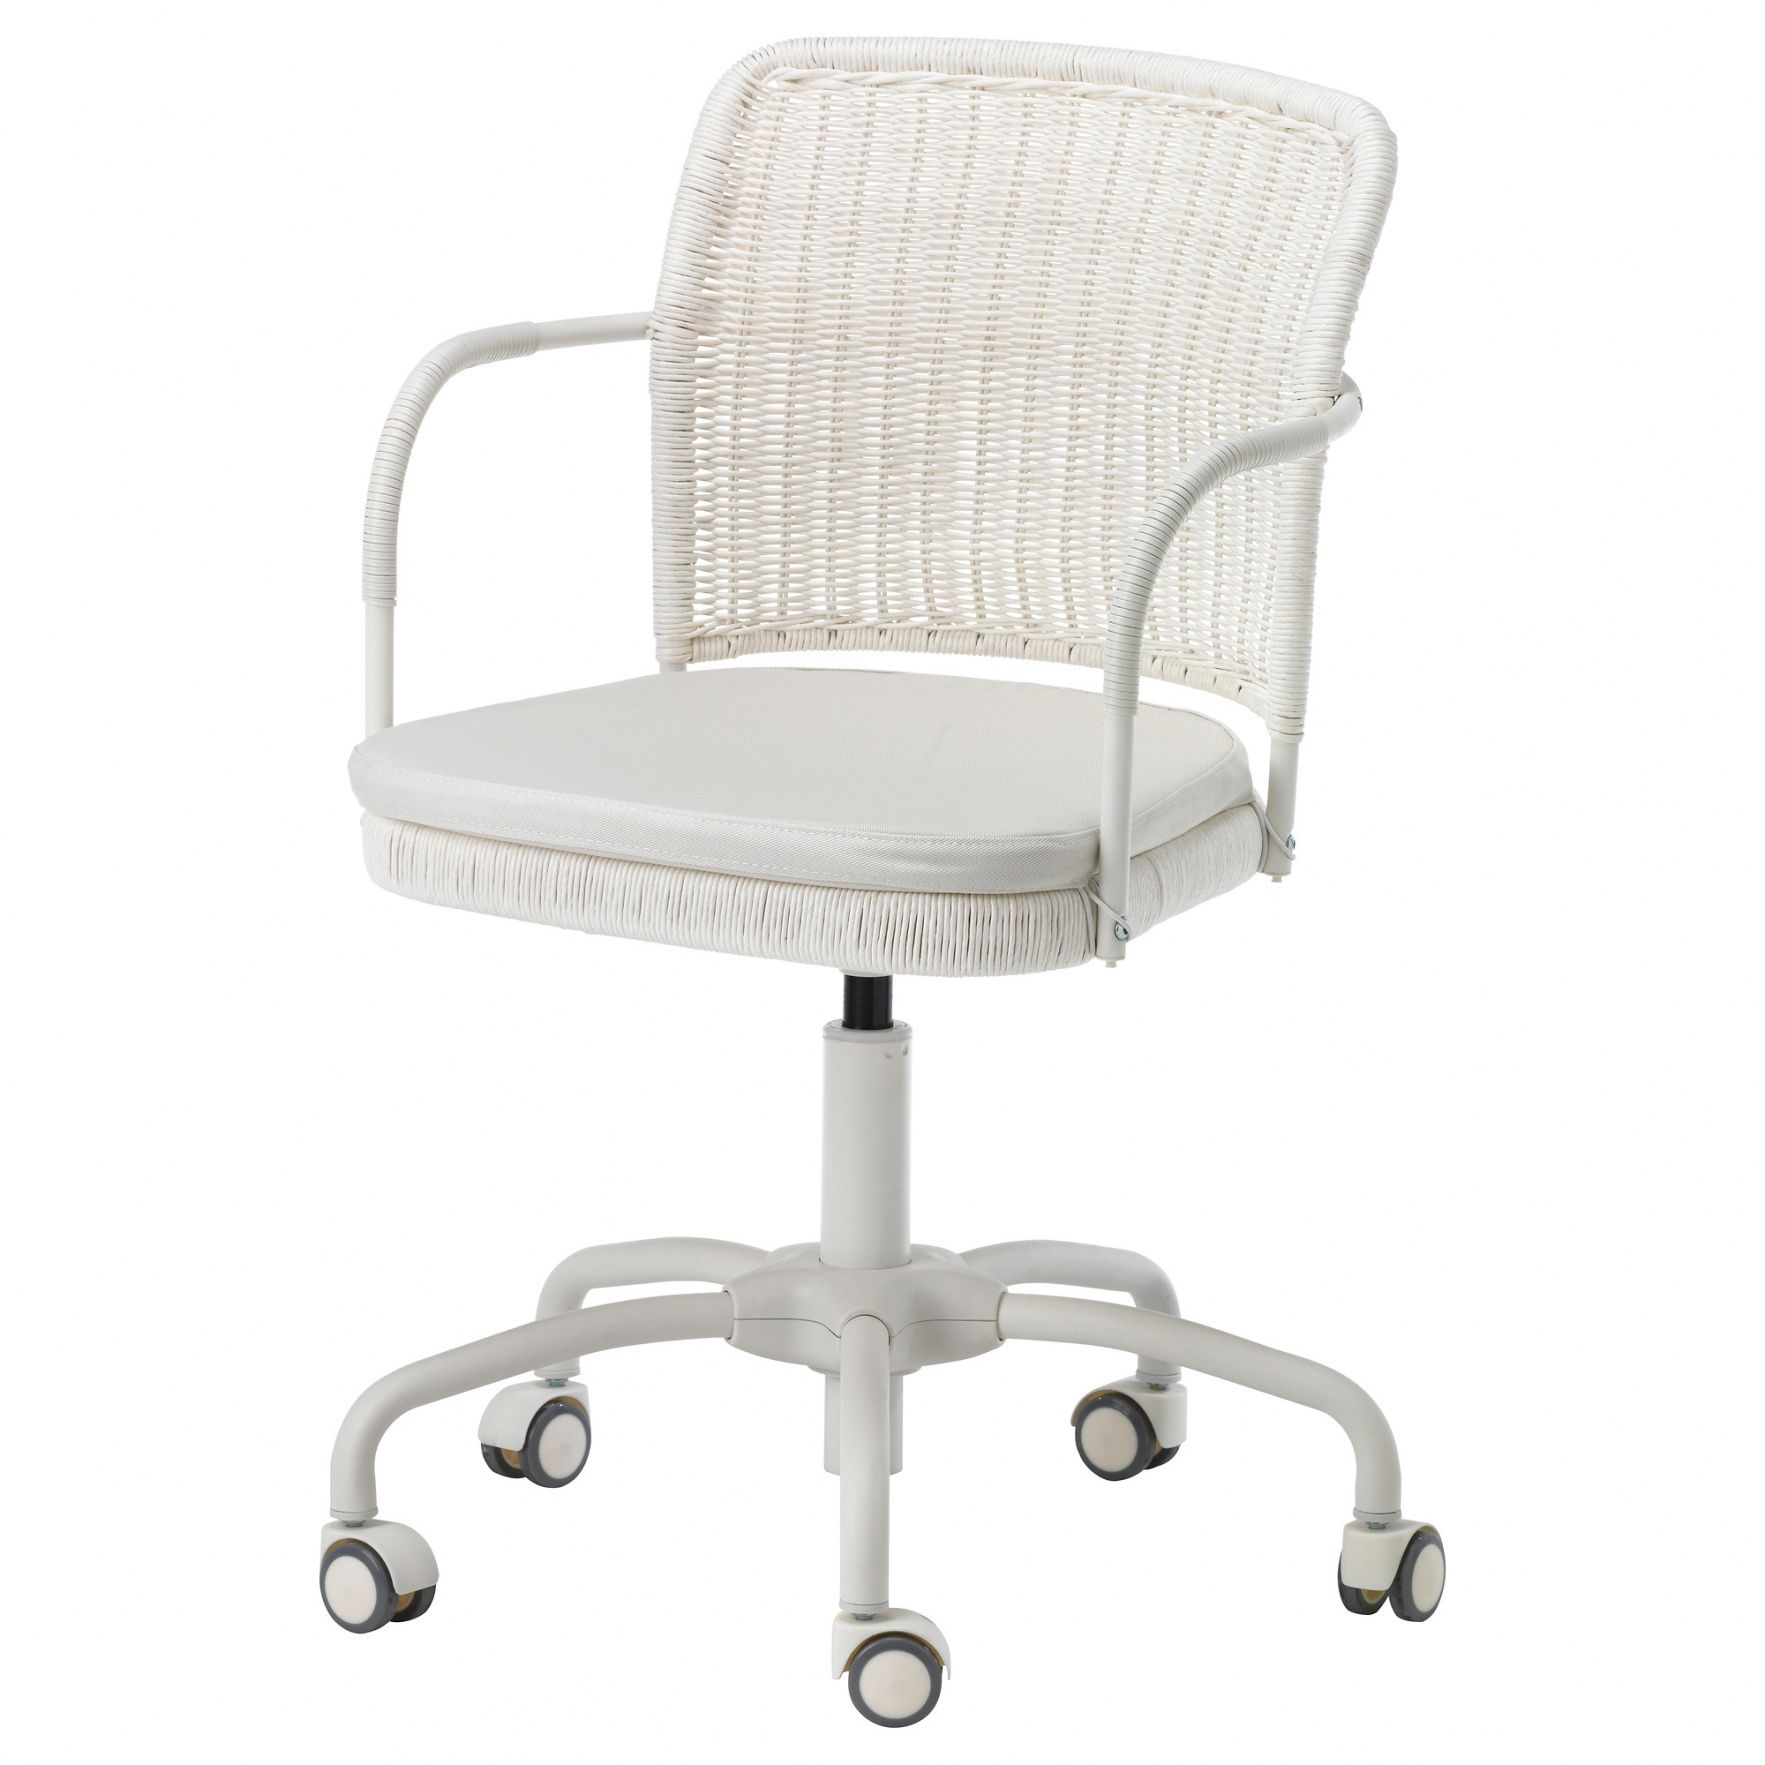 20+ Ikea White Chair Office - Best Paint to Paint Furniture Check ...